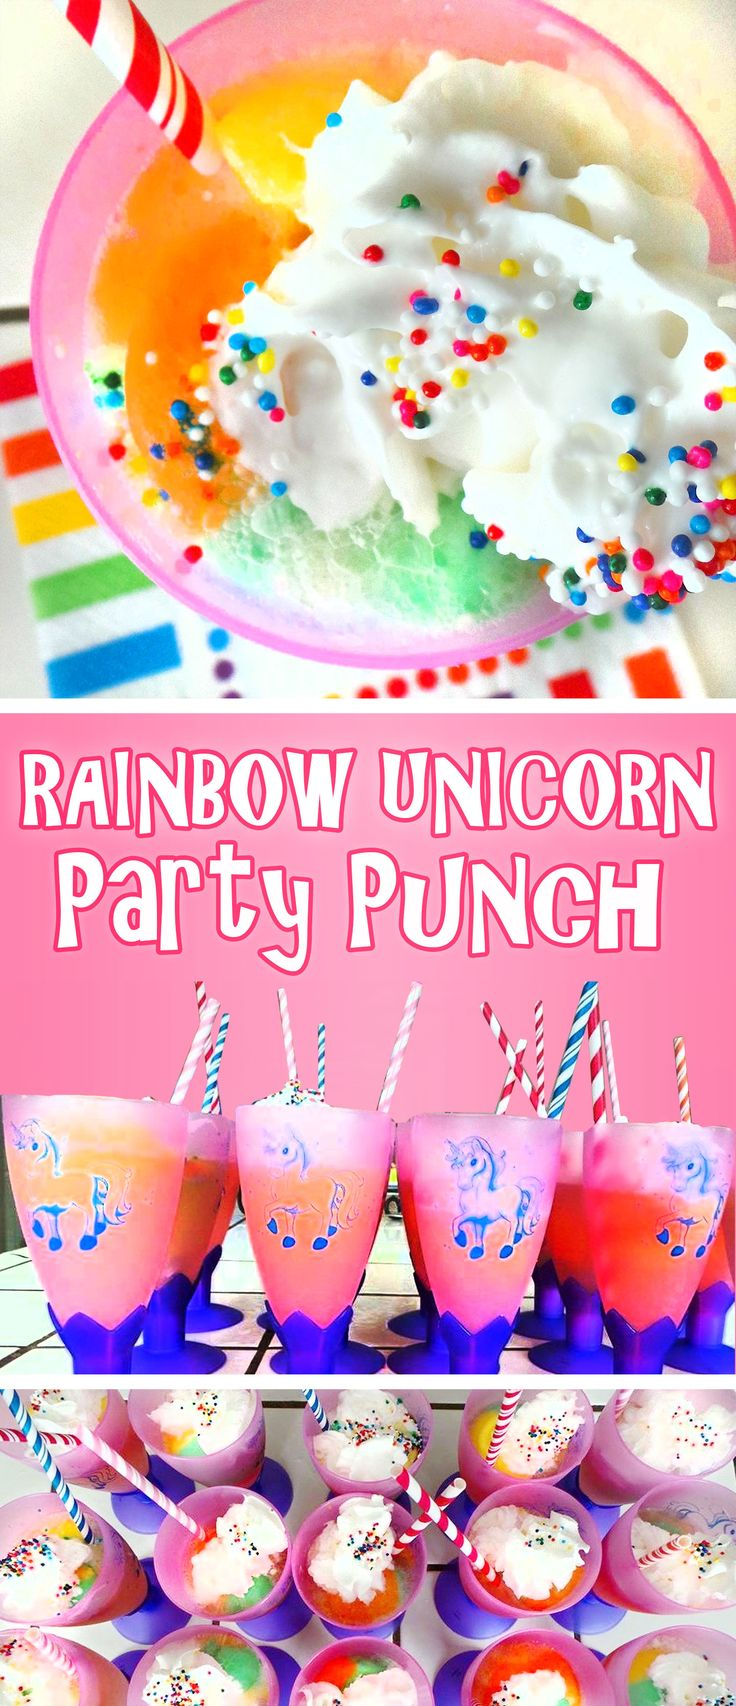 rainbow unicorn punch is a super easy and fun treat for birthday parties!